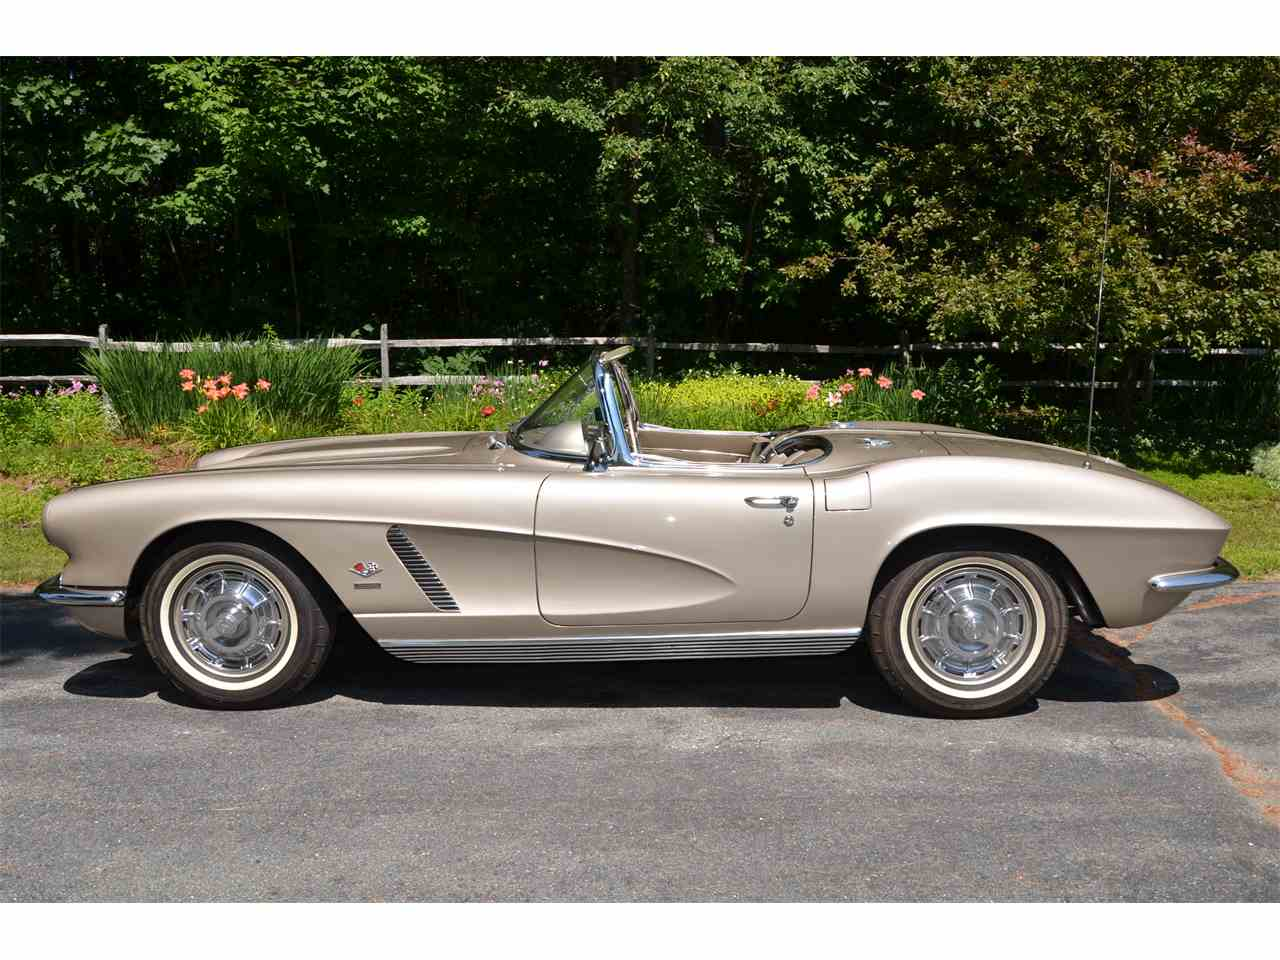 Large Picture of '62 Chevrolet Corvette - $130,000.00 Offered by a Private Seller - LWEM